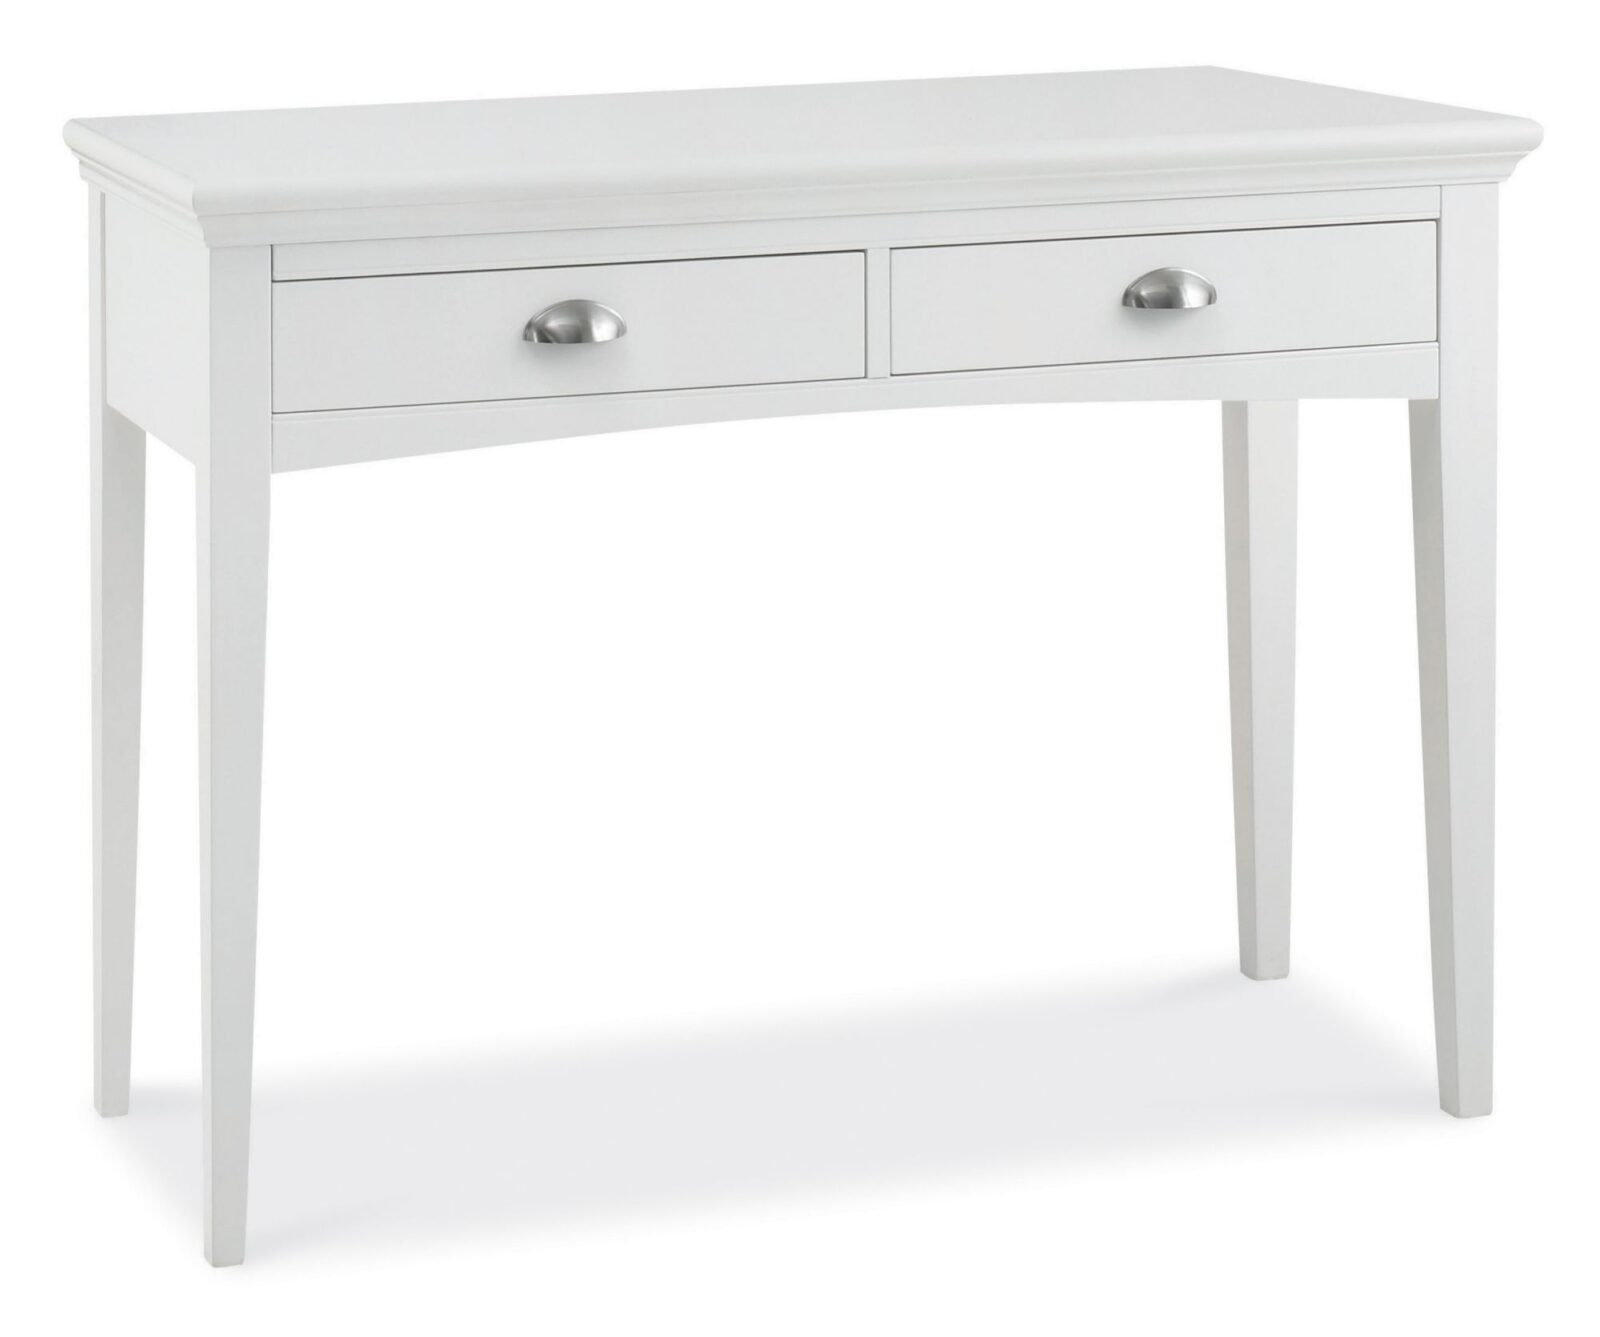 new concept 7cf93 1a8f6 Hampstead White Dressing Table